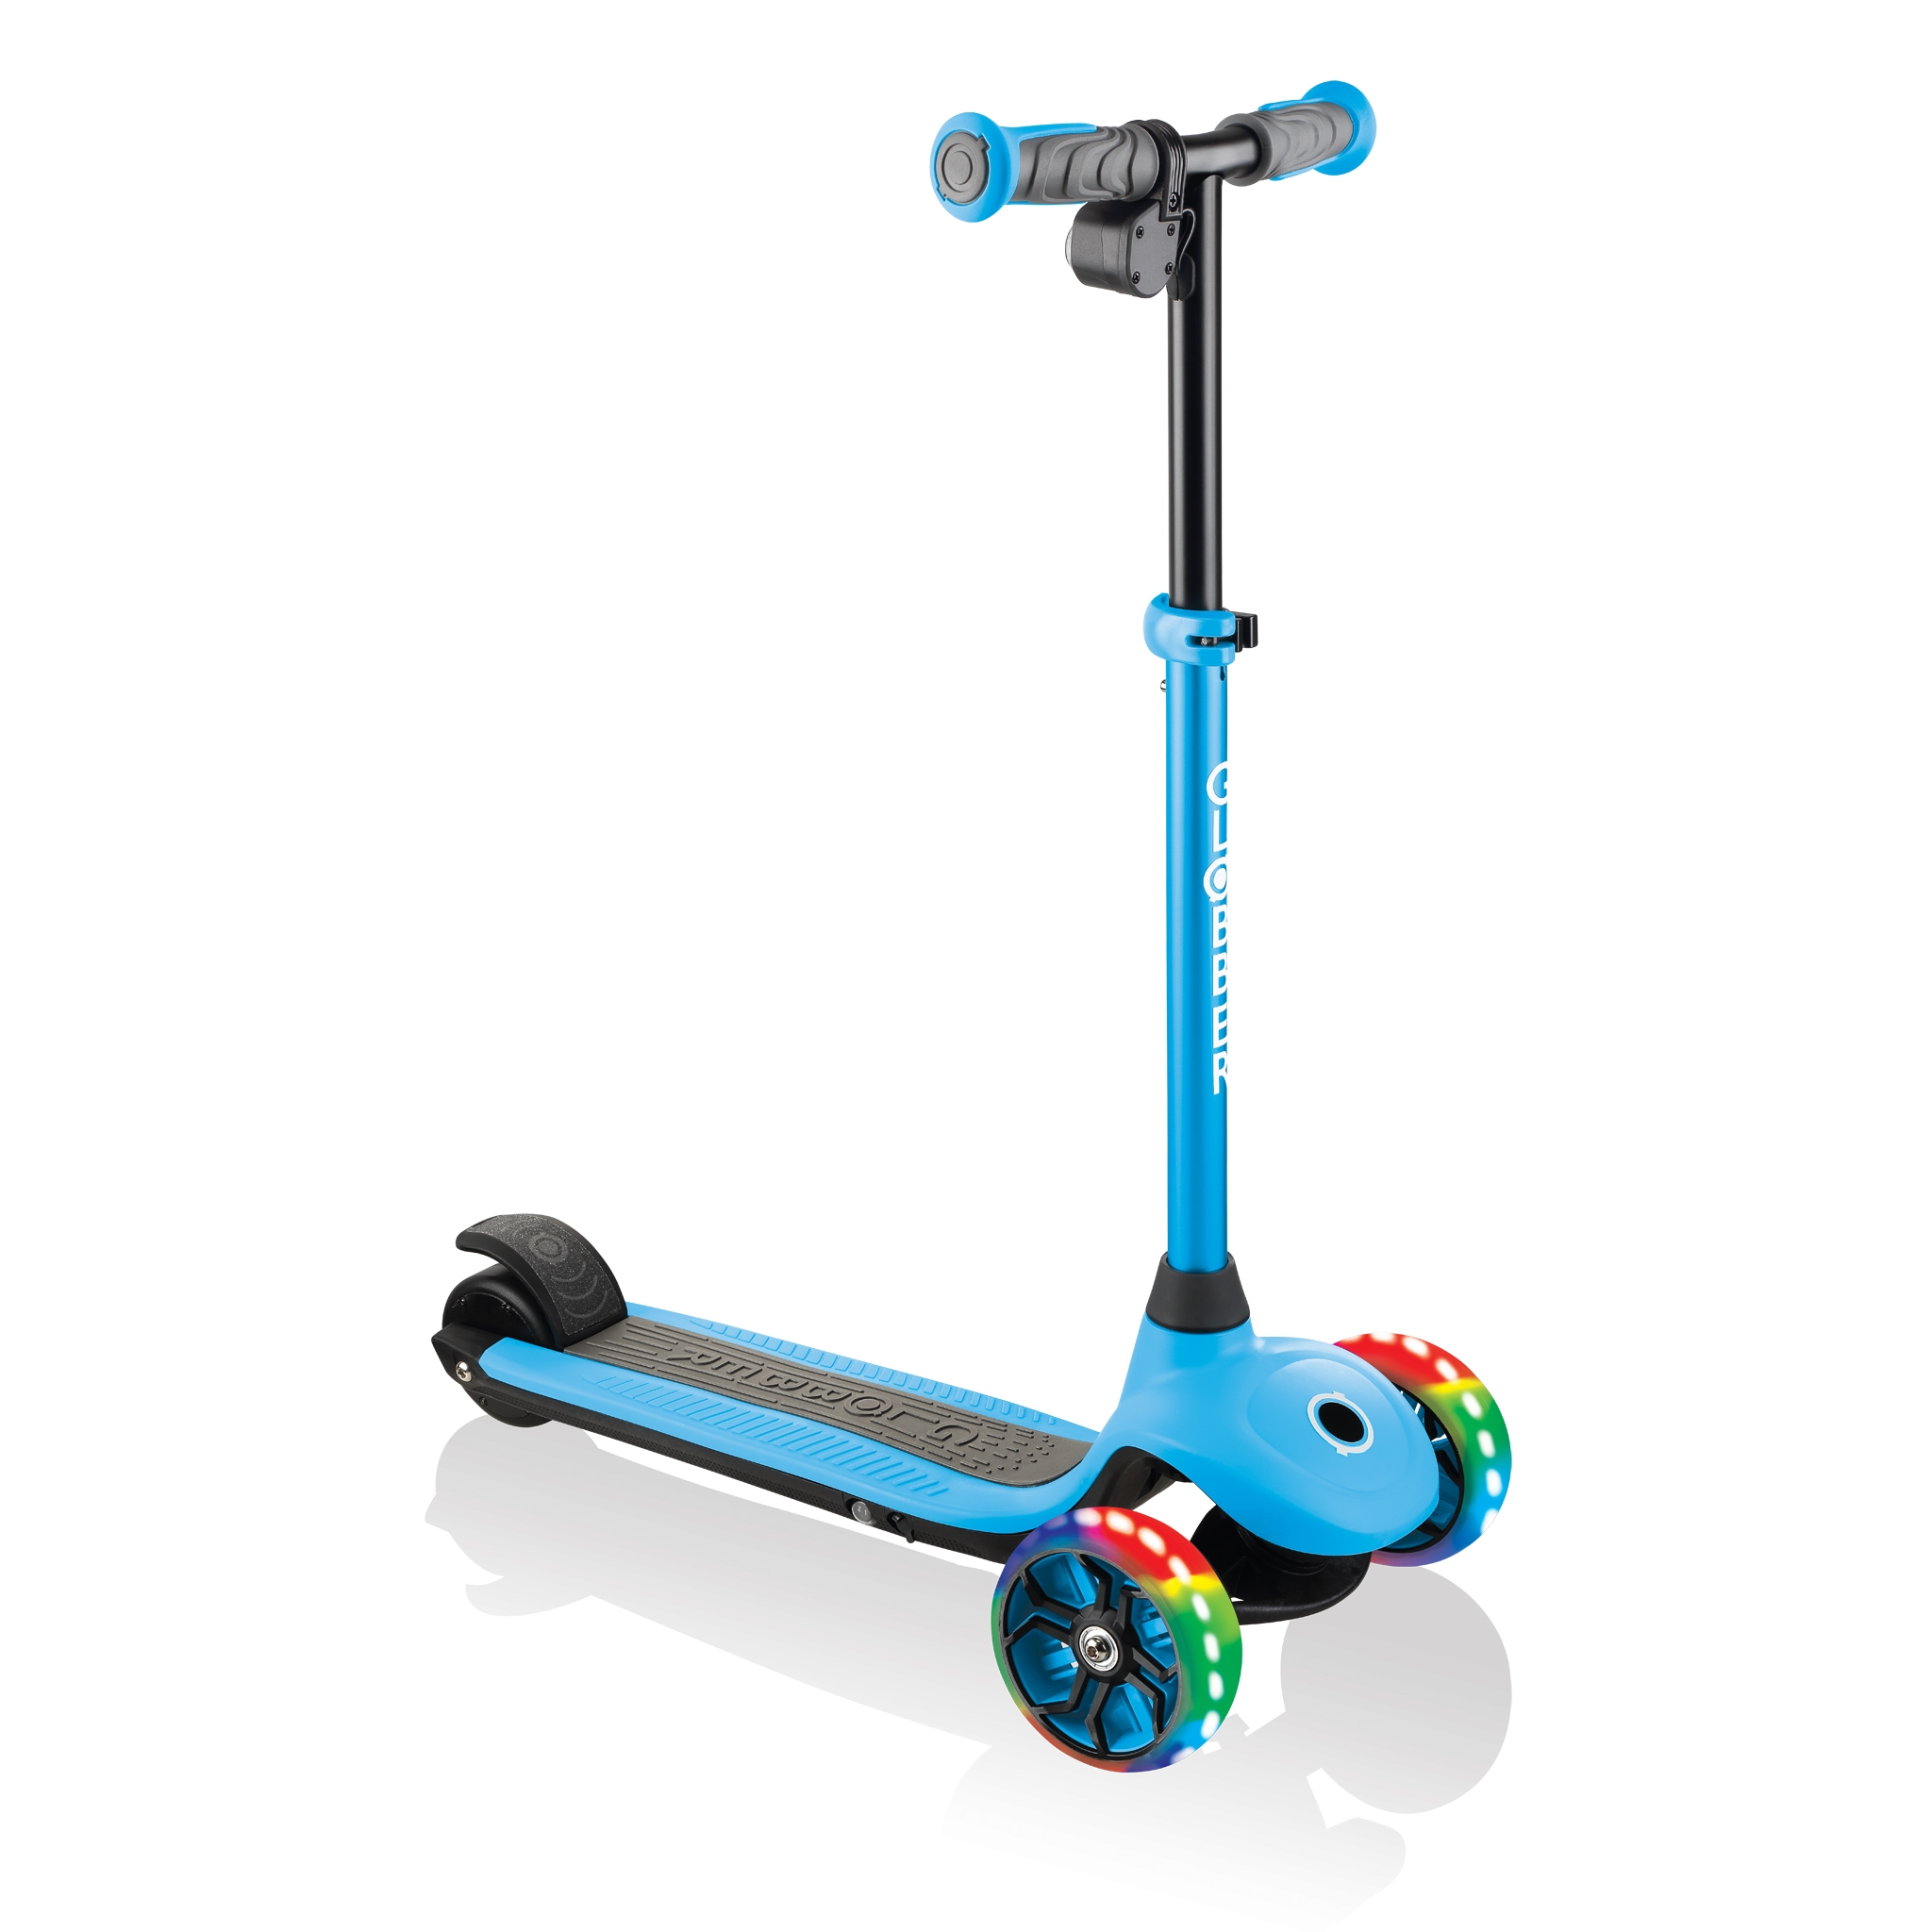 Globber-ONE-K-E-MOTION-4-award-winning-3-wheel-electric-scooter-for-boys-and-girls-with-80W-hub-motor_sky-blue 0